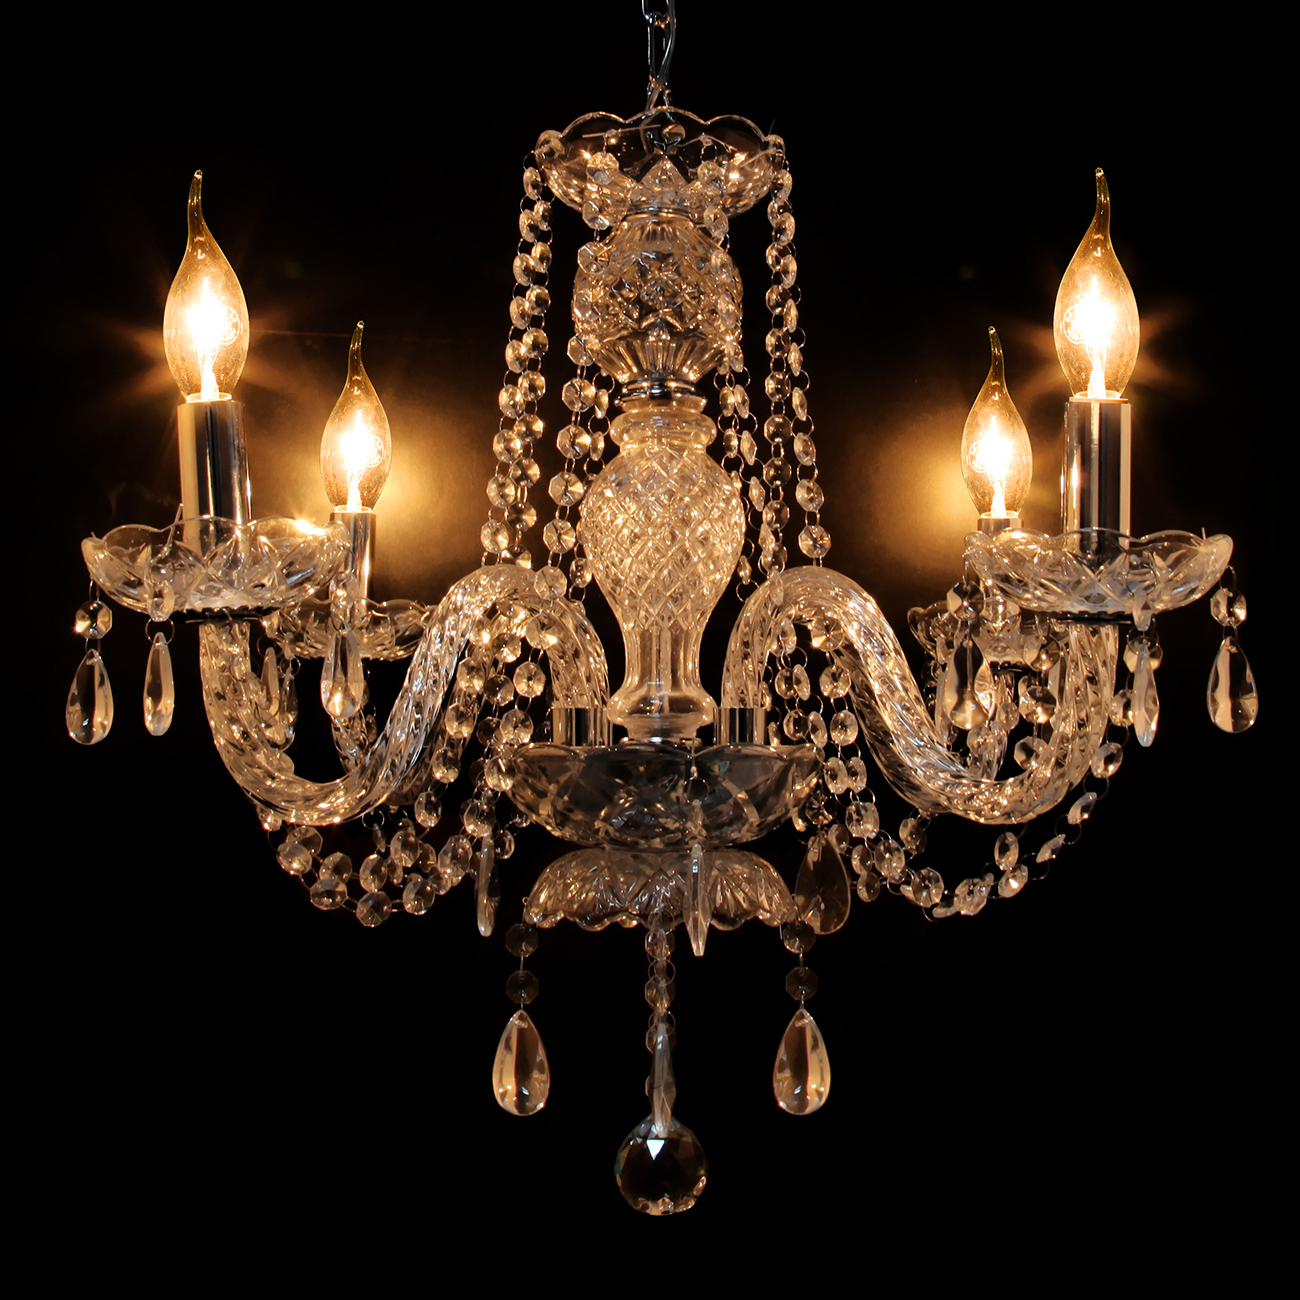 Yonntech 4 Arm Crystal Chandelier Ceiling Lights Candle Pendant Lamp Decoration Room DIY